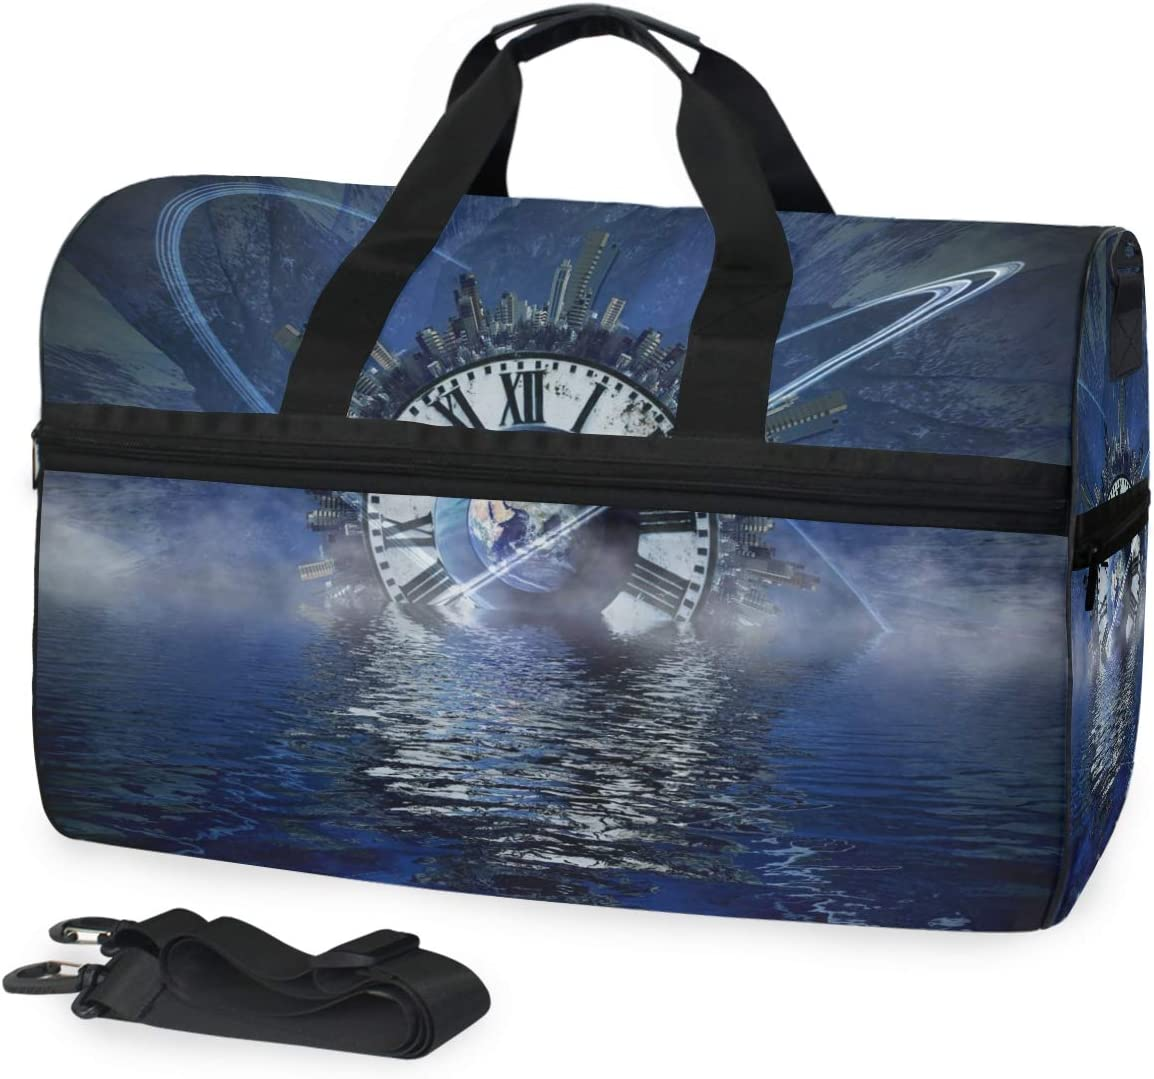 FAJRO Gym Bag Travel Duffel Express Weekender Bag Blue Clock Carry On Luggage with Shoe Pouch